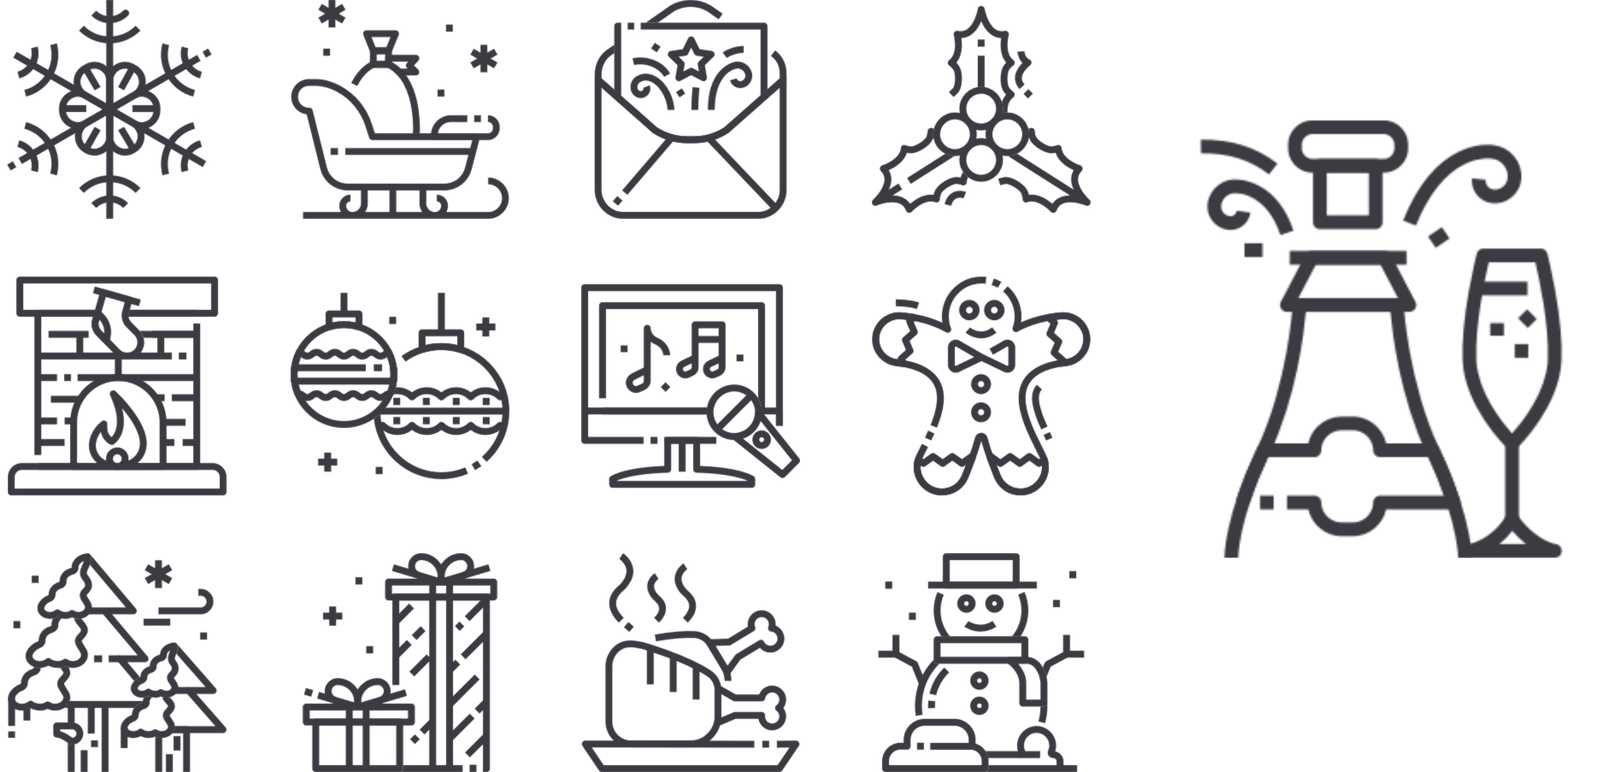 Christmas Iconography.The Issue Of Diversity In Icon Design The Iconfinder Blog